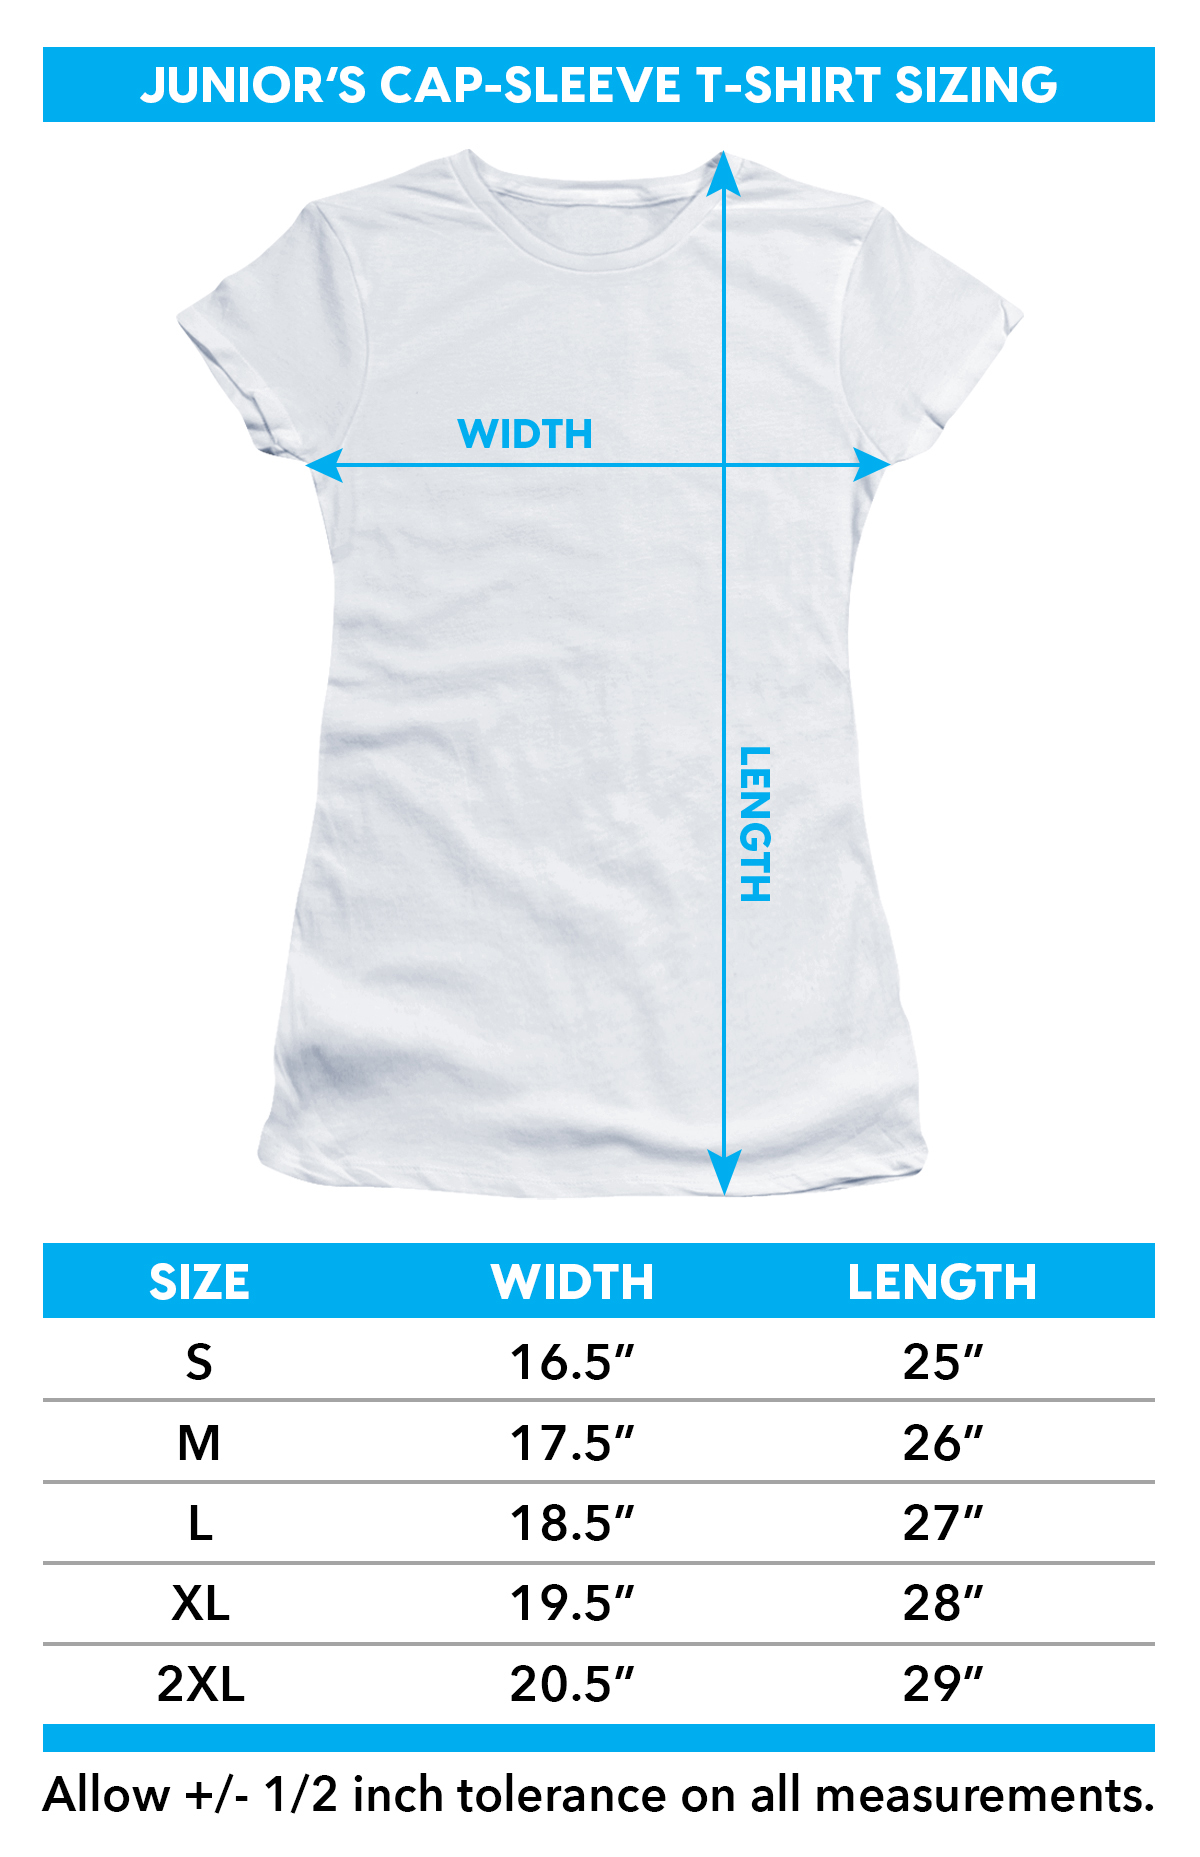 Girls sizing chart for Frankenstein Girls T-Shirt - Monoton Illustrated TRV-UNI1291B-JS